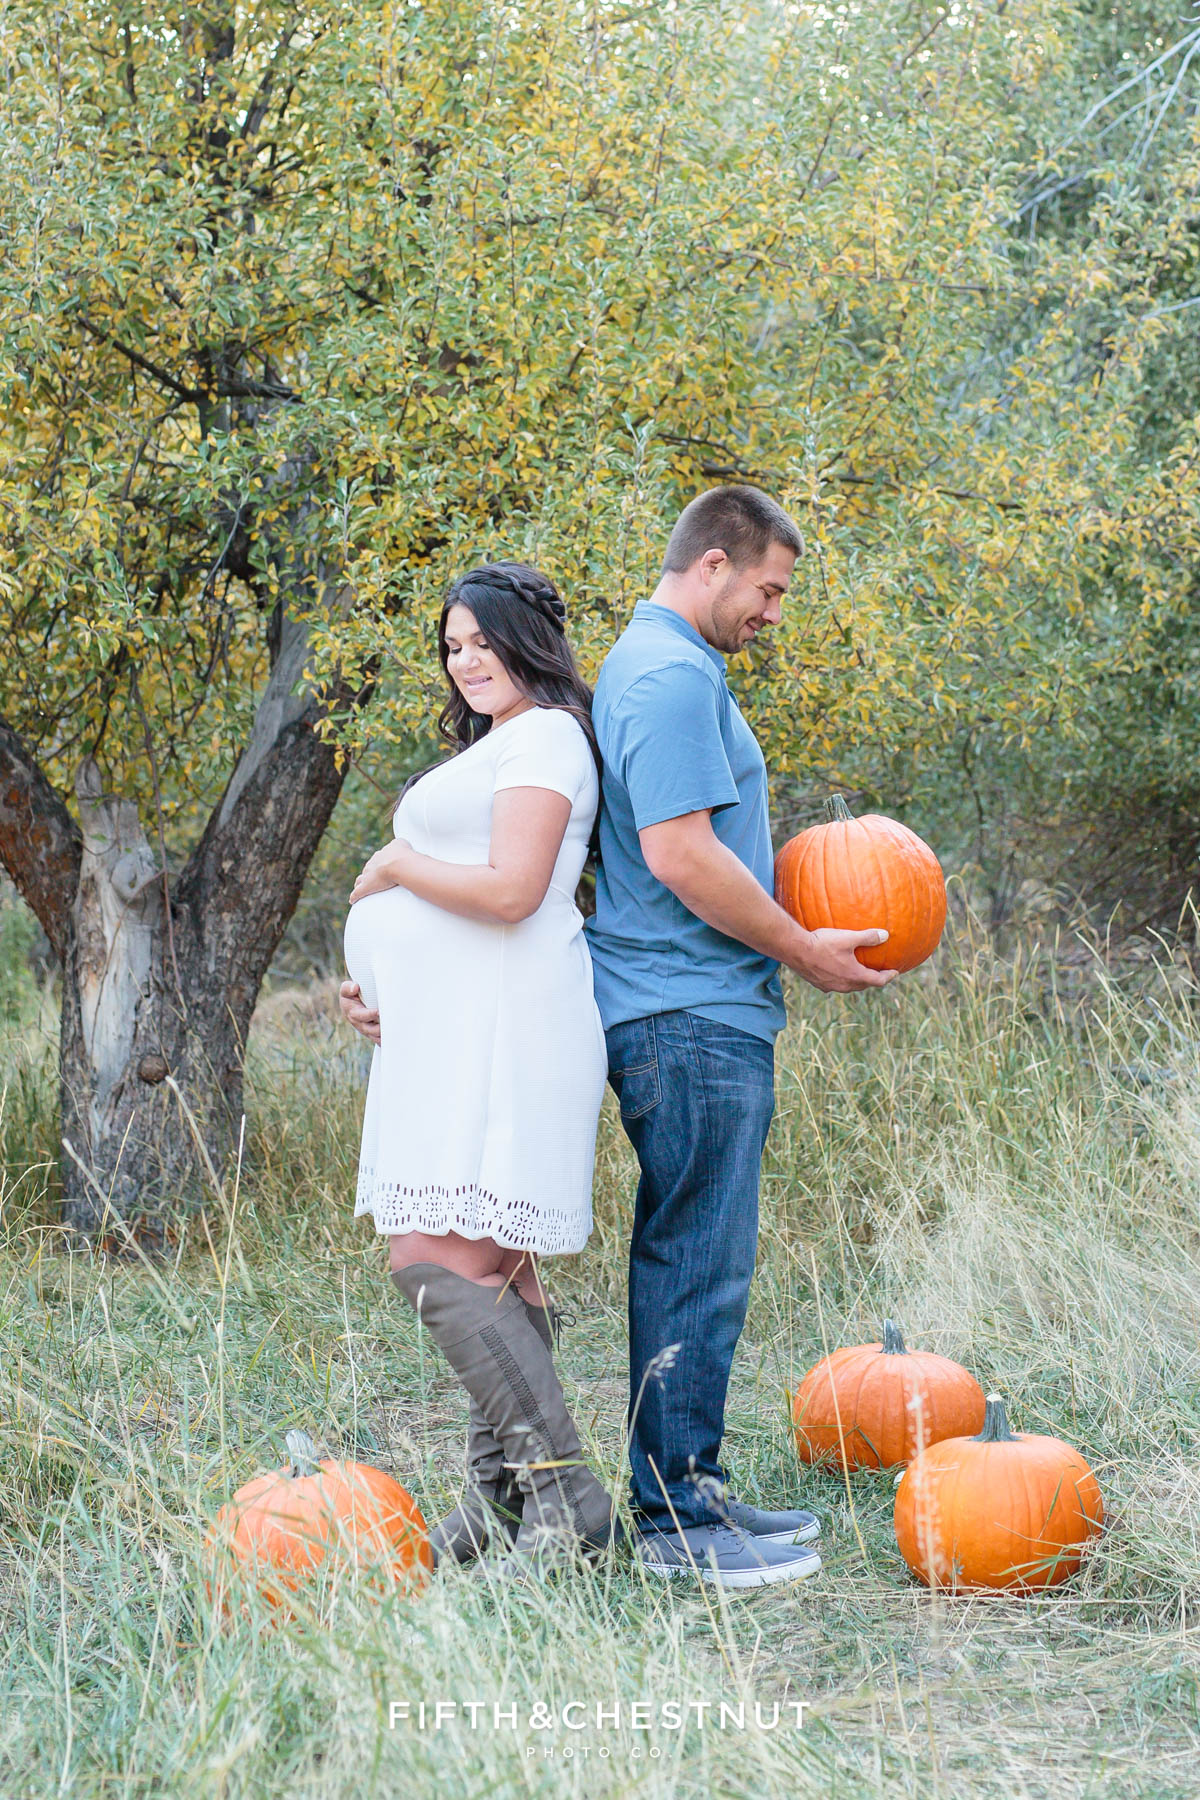 Close up of Husband and his pregnant wife stand back to back in an apple orchard surrounded by pumpkins while he looks down at a pumpkin he's holding and she looks down at her baby bump for their fall maternity portraits